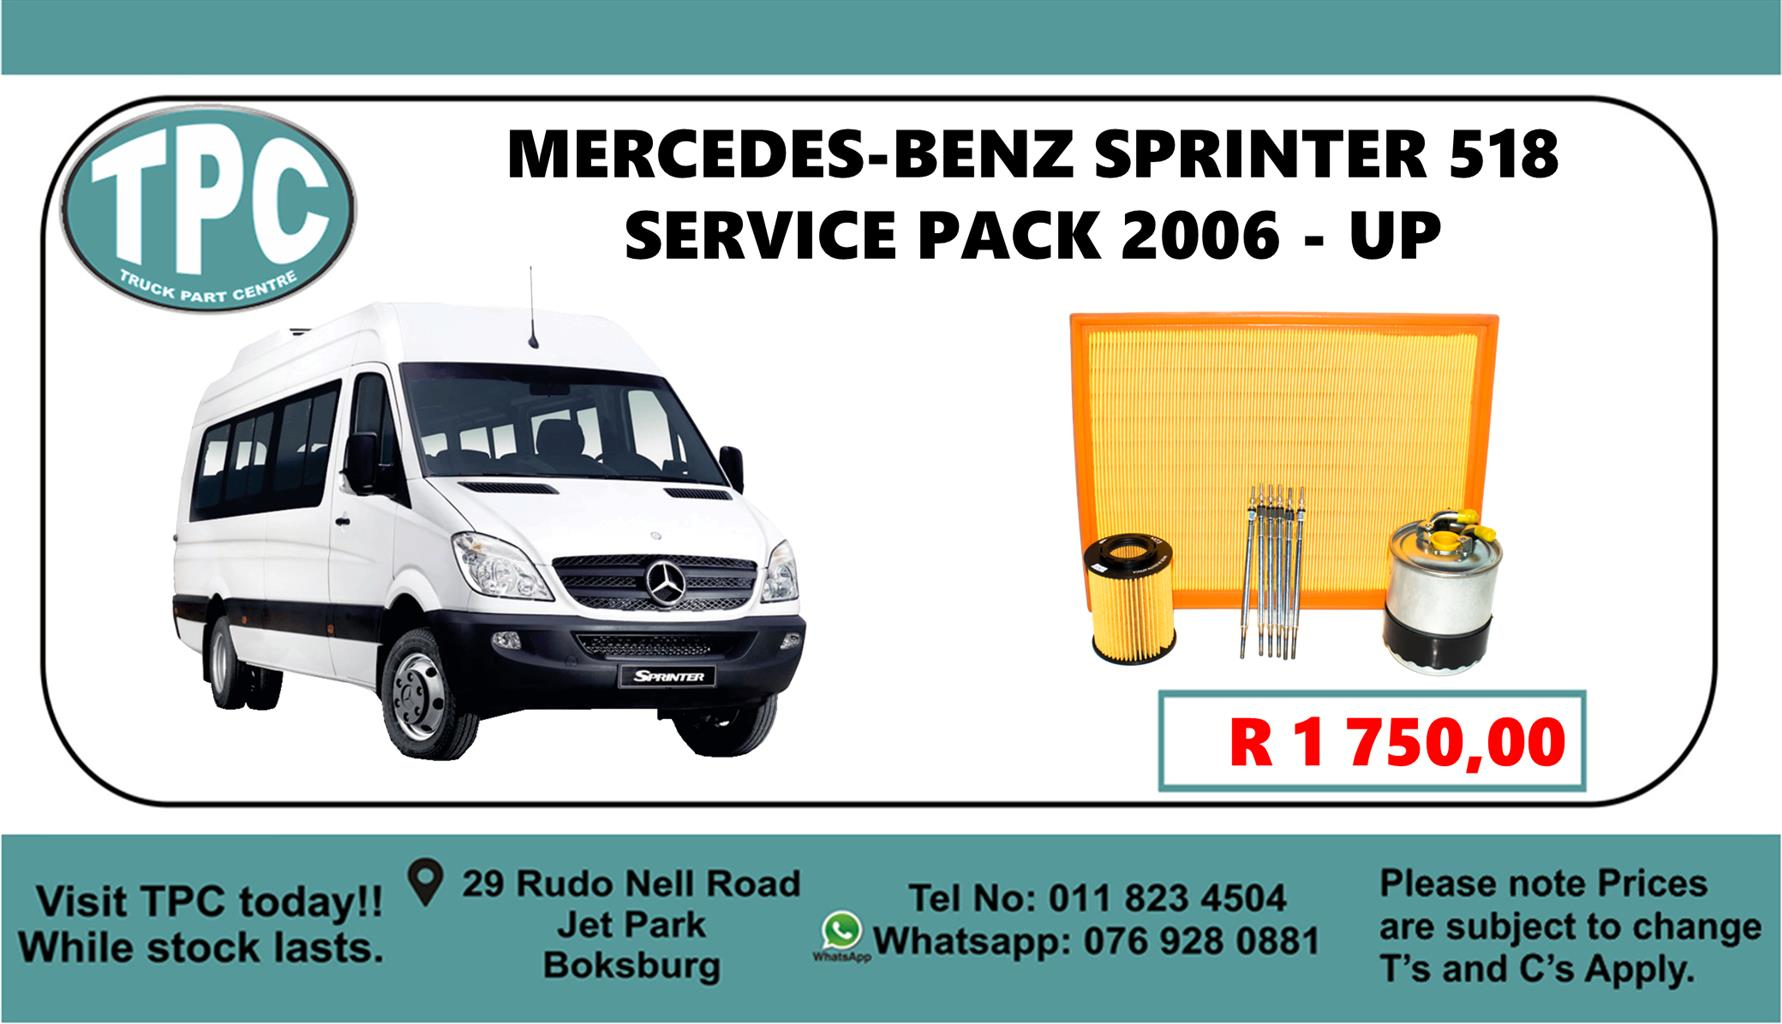 Mercedes-Benz Sprinter 518 Service Pack 2006 - Up - For Sale at TPC.